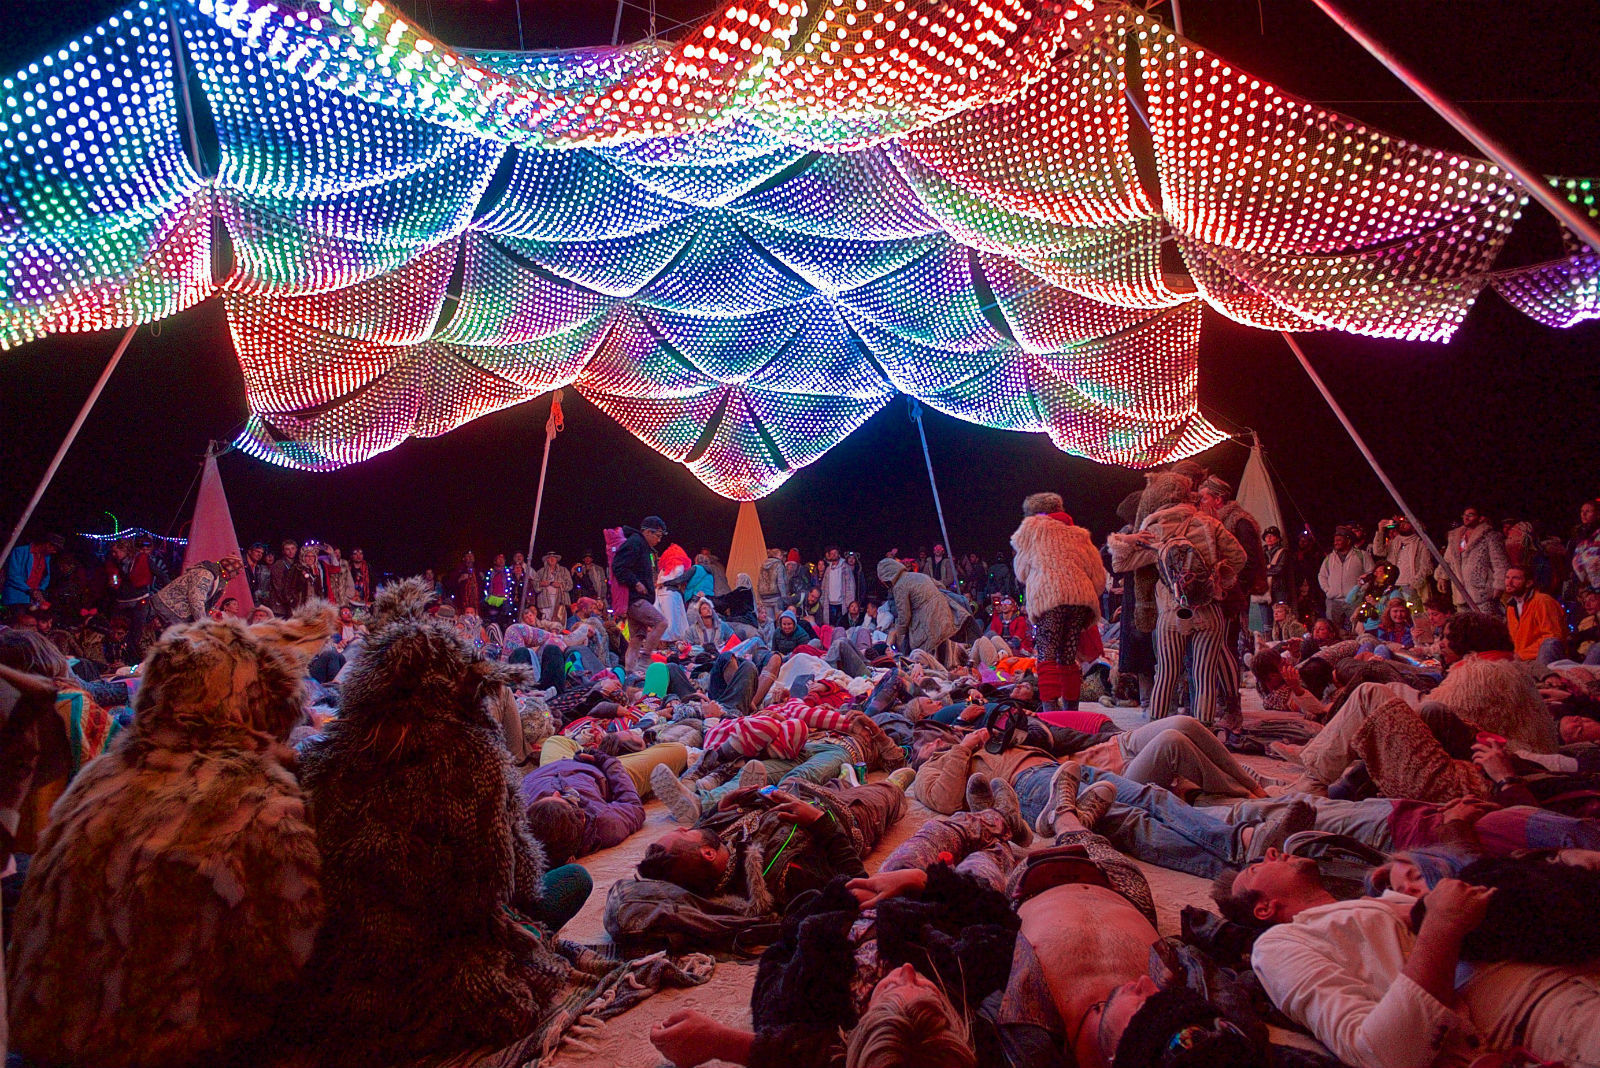 a-sneak-peek-at-the-coolest-art-coming-to-burning-man-2016-burning-man-orgy-tent-l-d7845e2047cb97ab.jpg